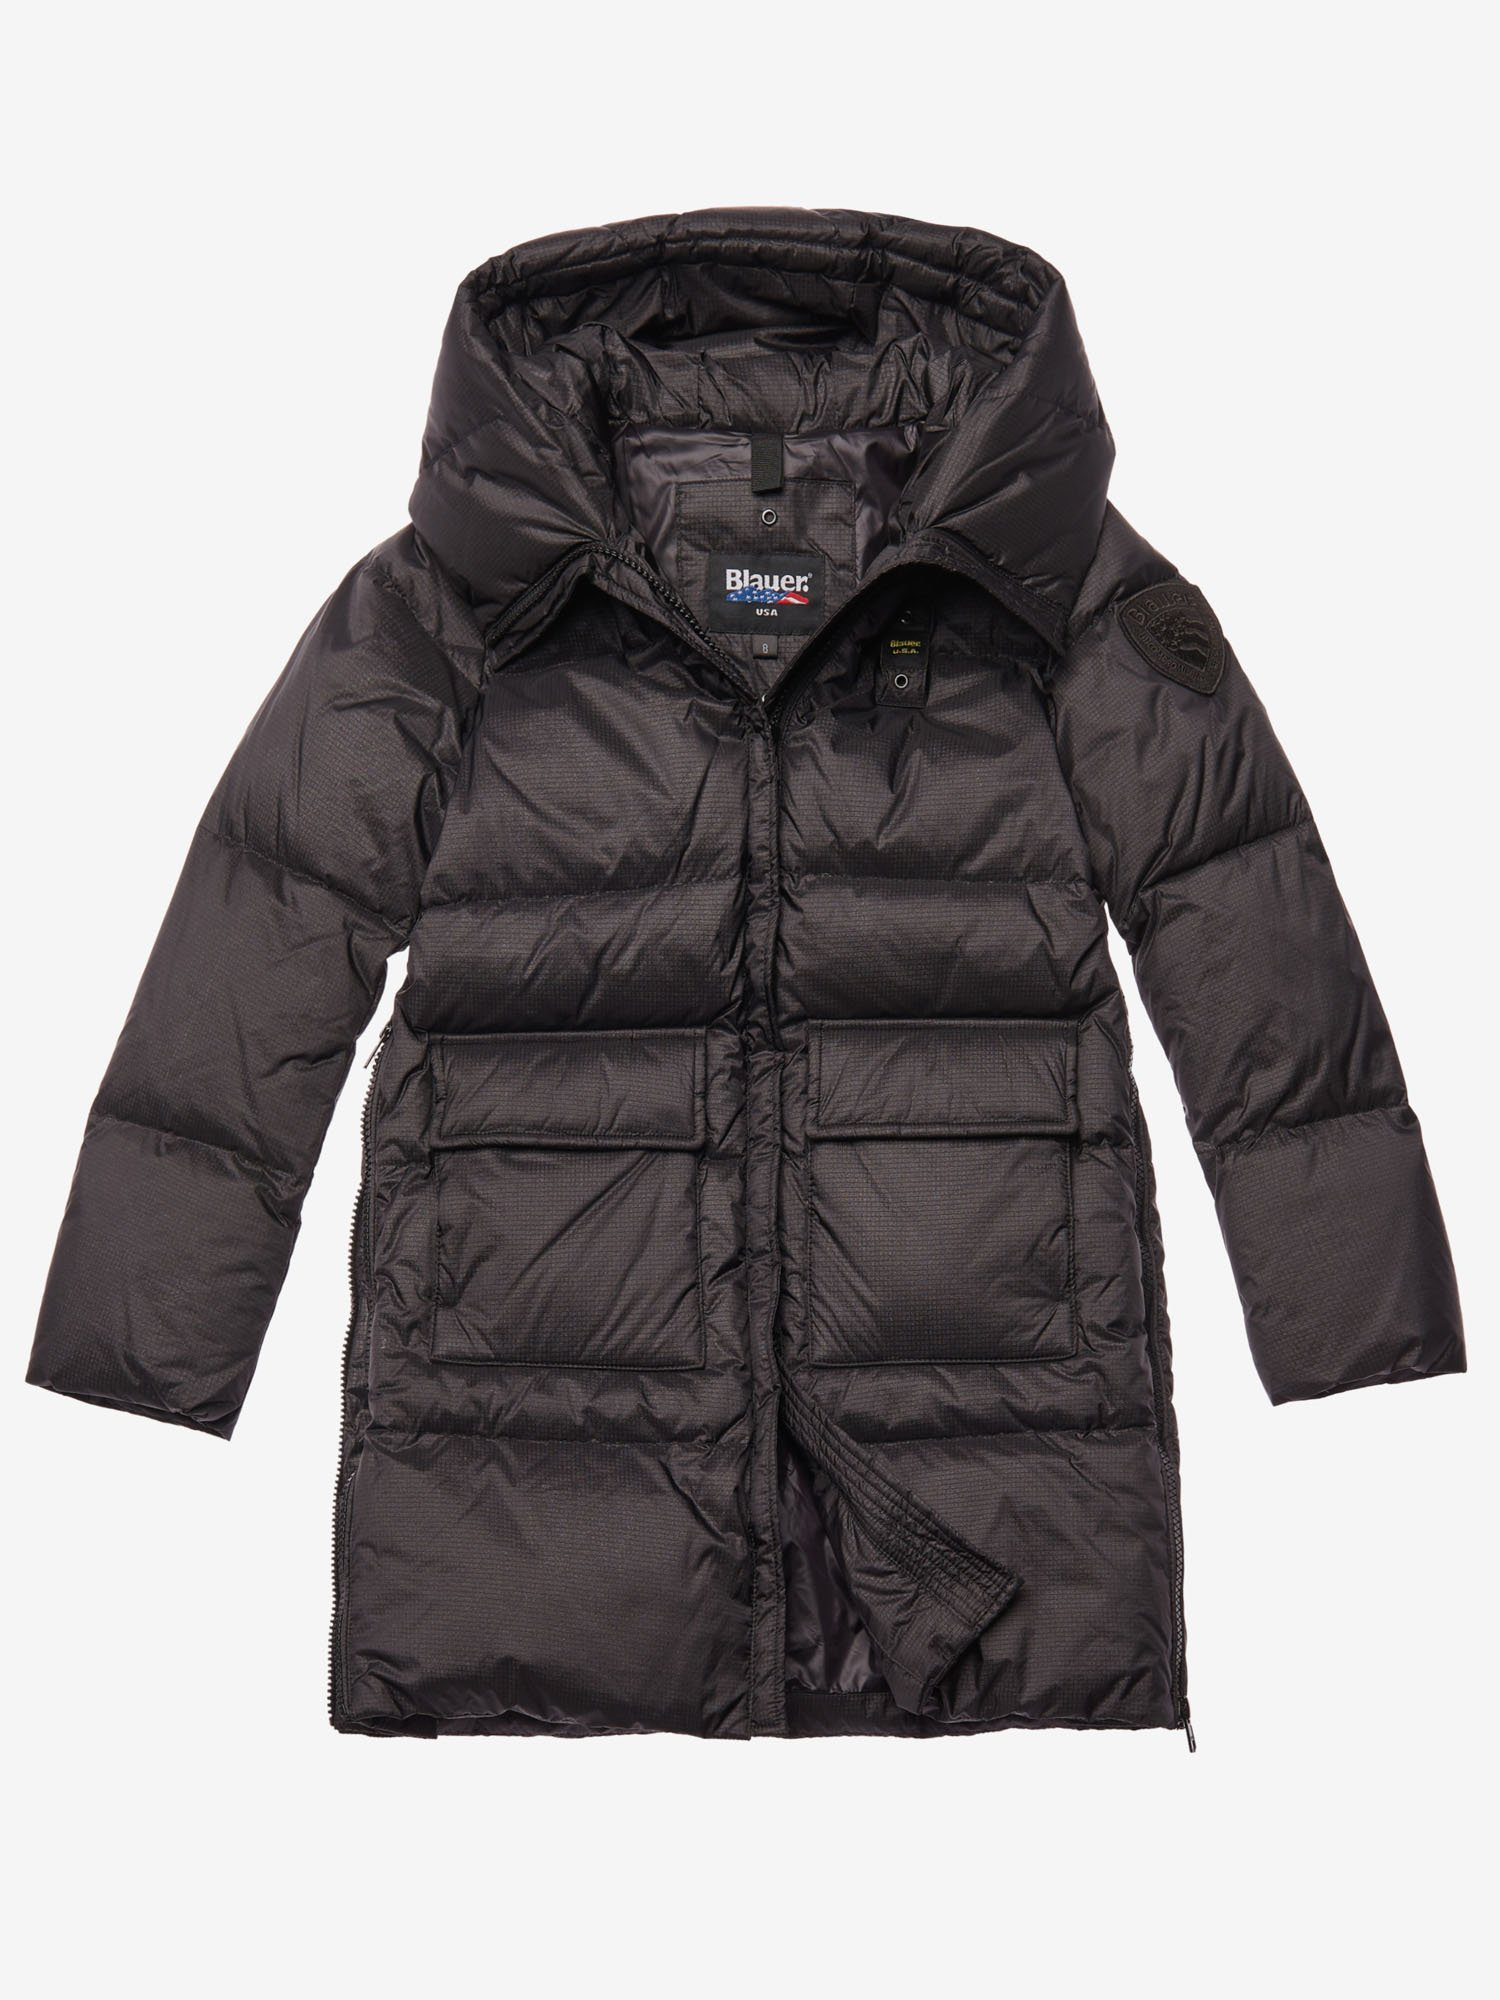 Blauer - WOODS  LONG IRIDESCENT DOWN JACKET - Black - Blauer